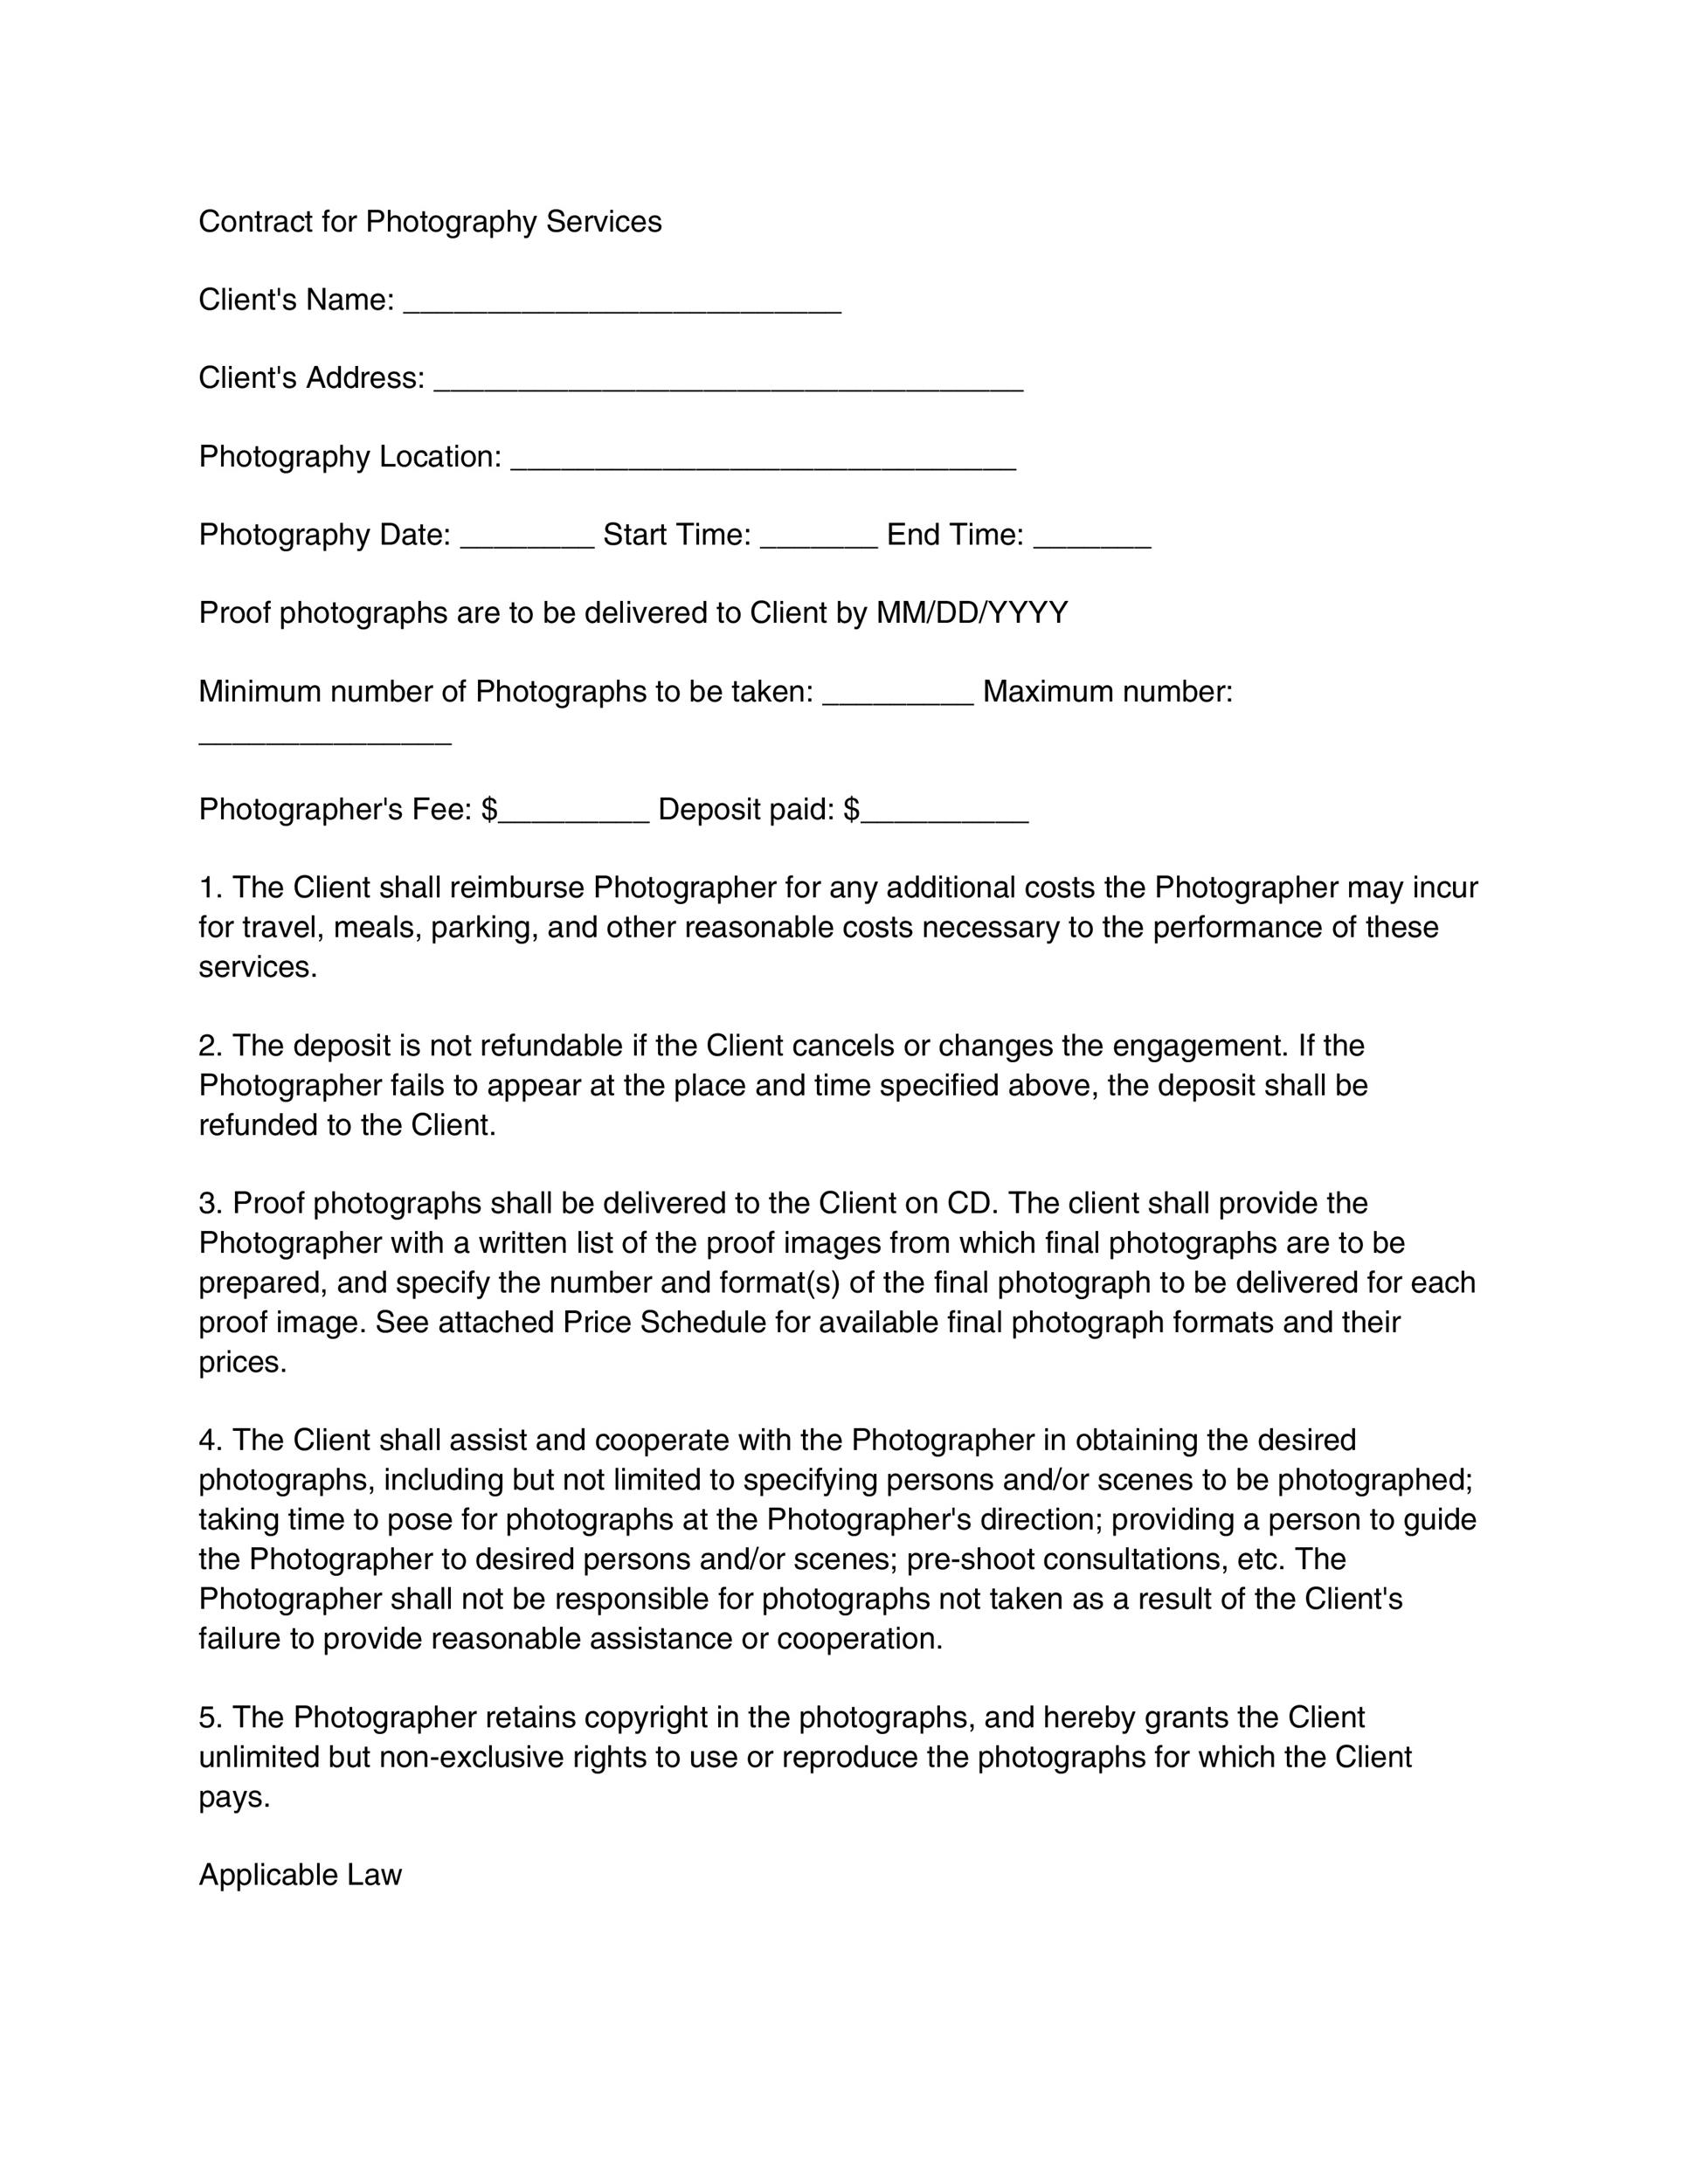 Free Contract Template 18